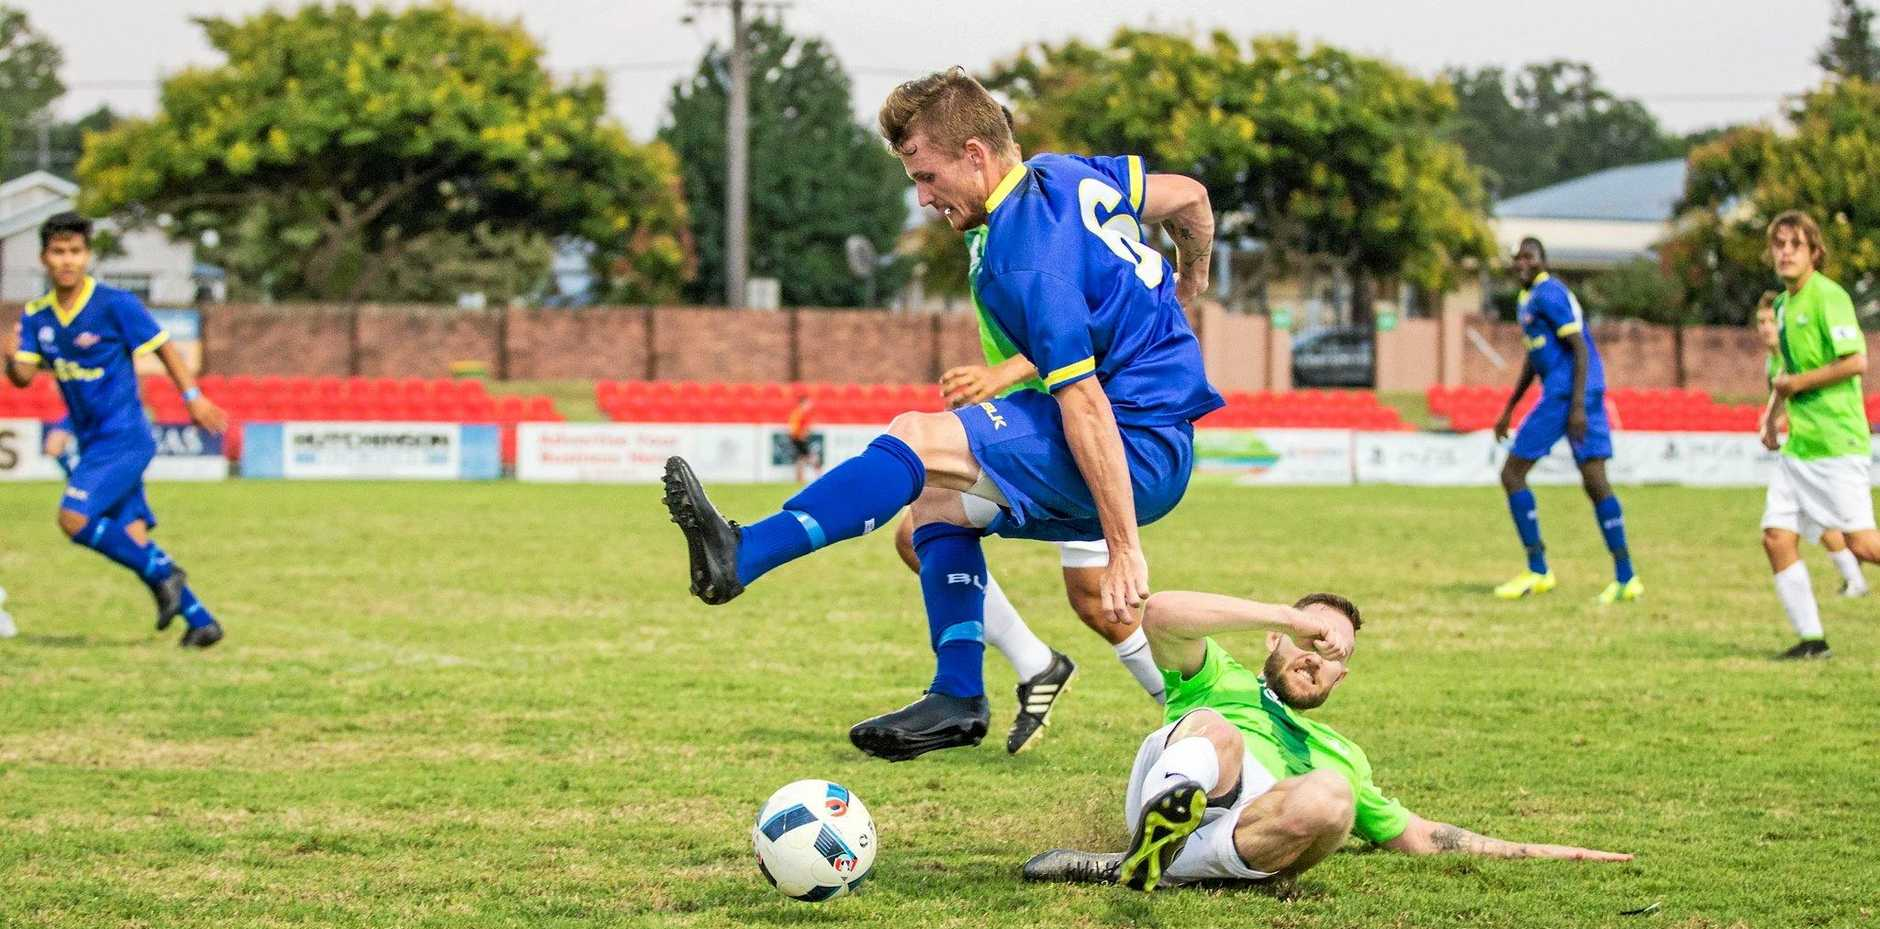 JOURNEYMAN: South-West Thunder's Jackson Haussler embarks on a weekly interstate road trip to follow his football dreams